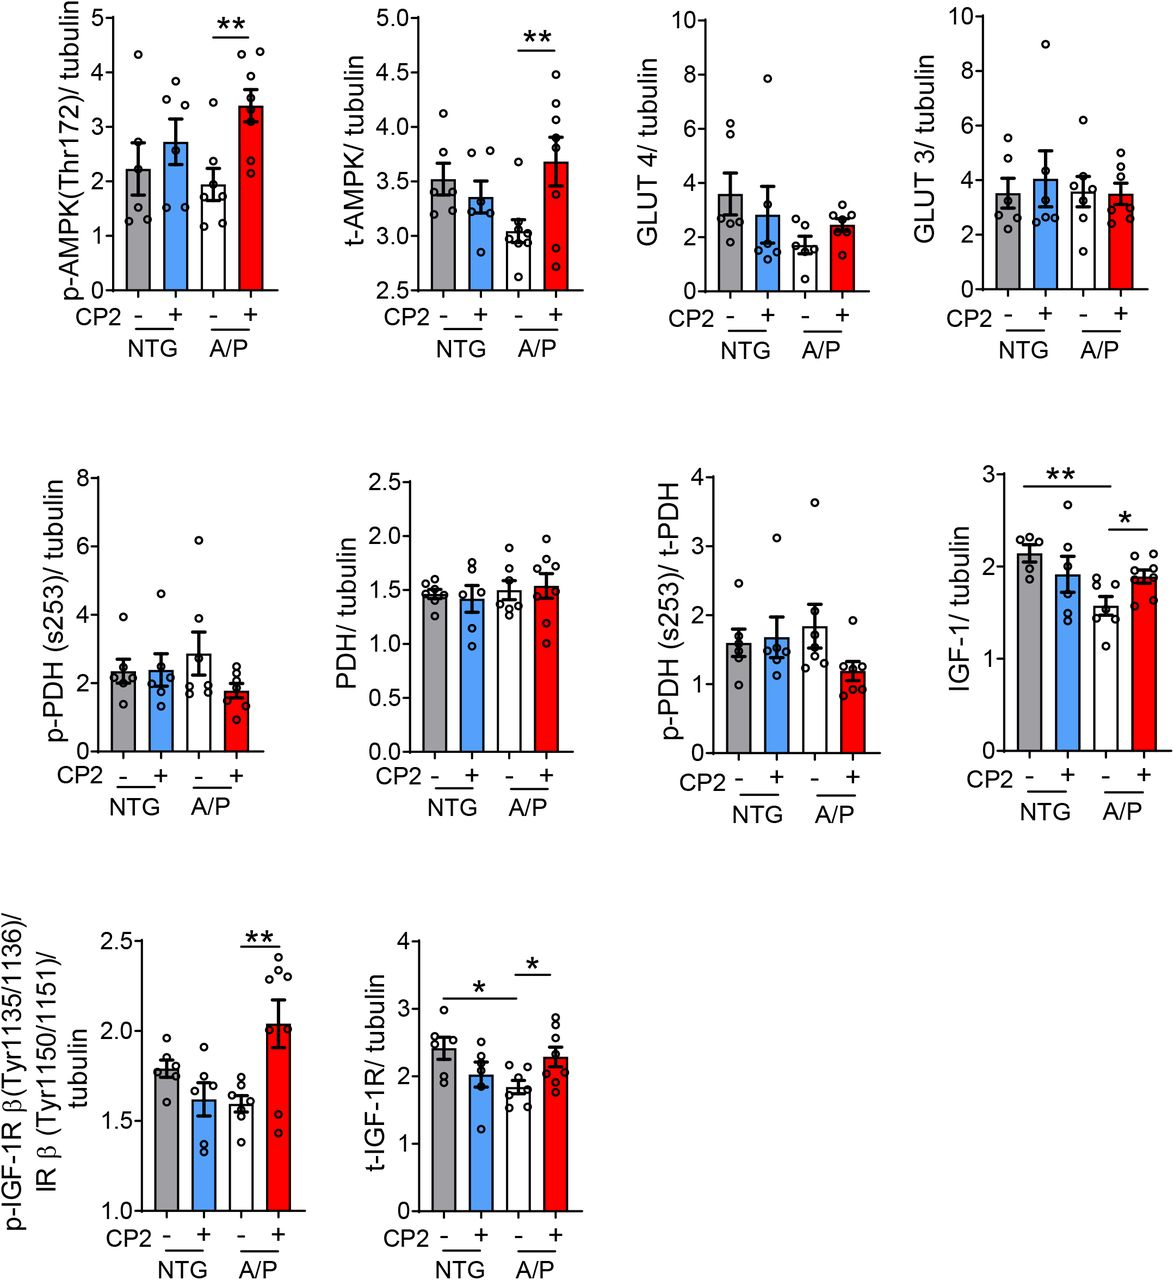 CP2 treatment improves glucose uptake and utilization in APP/PS1 mice. Western blot quantification of protein levels relevant to IGF-1 signaling pathway in the brain tissue of CP2- and vehicle-treated APP/PS1 and NTG mice after 13 - 14 months of treatment. Significance was determined by two-way ANOVA with Fisher`s LSD post-hoc test. A/P, APP/PS1; NTG, non-transgenic littermates. Data are presented as mean ± S.E.M. *P